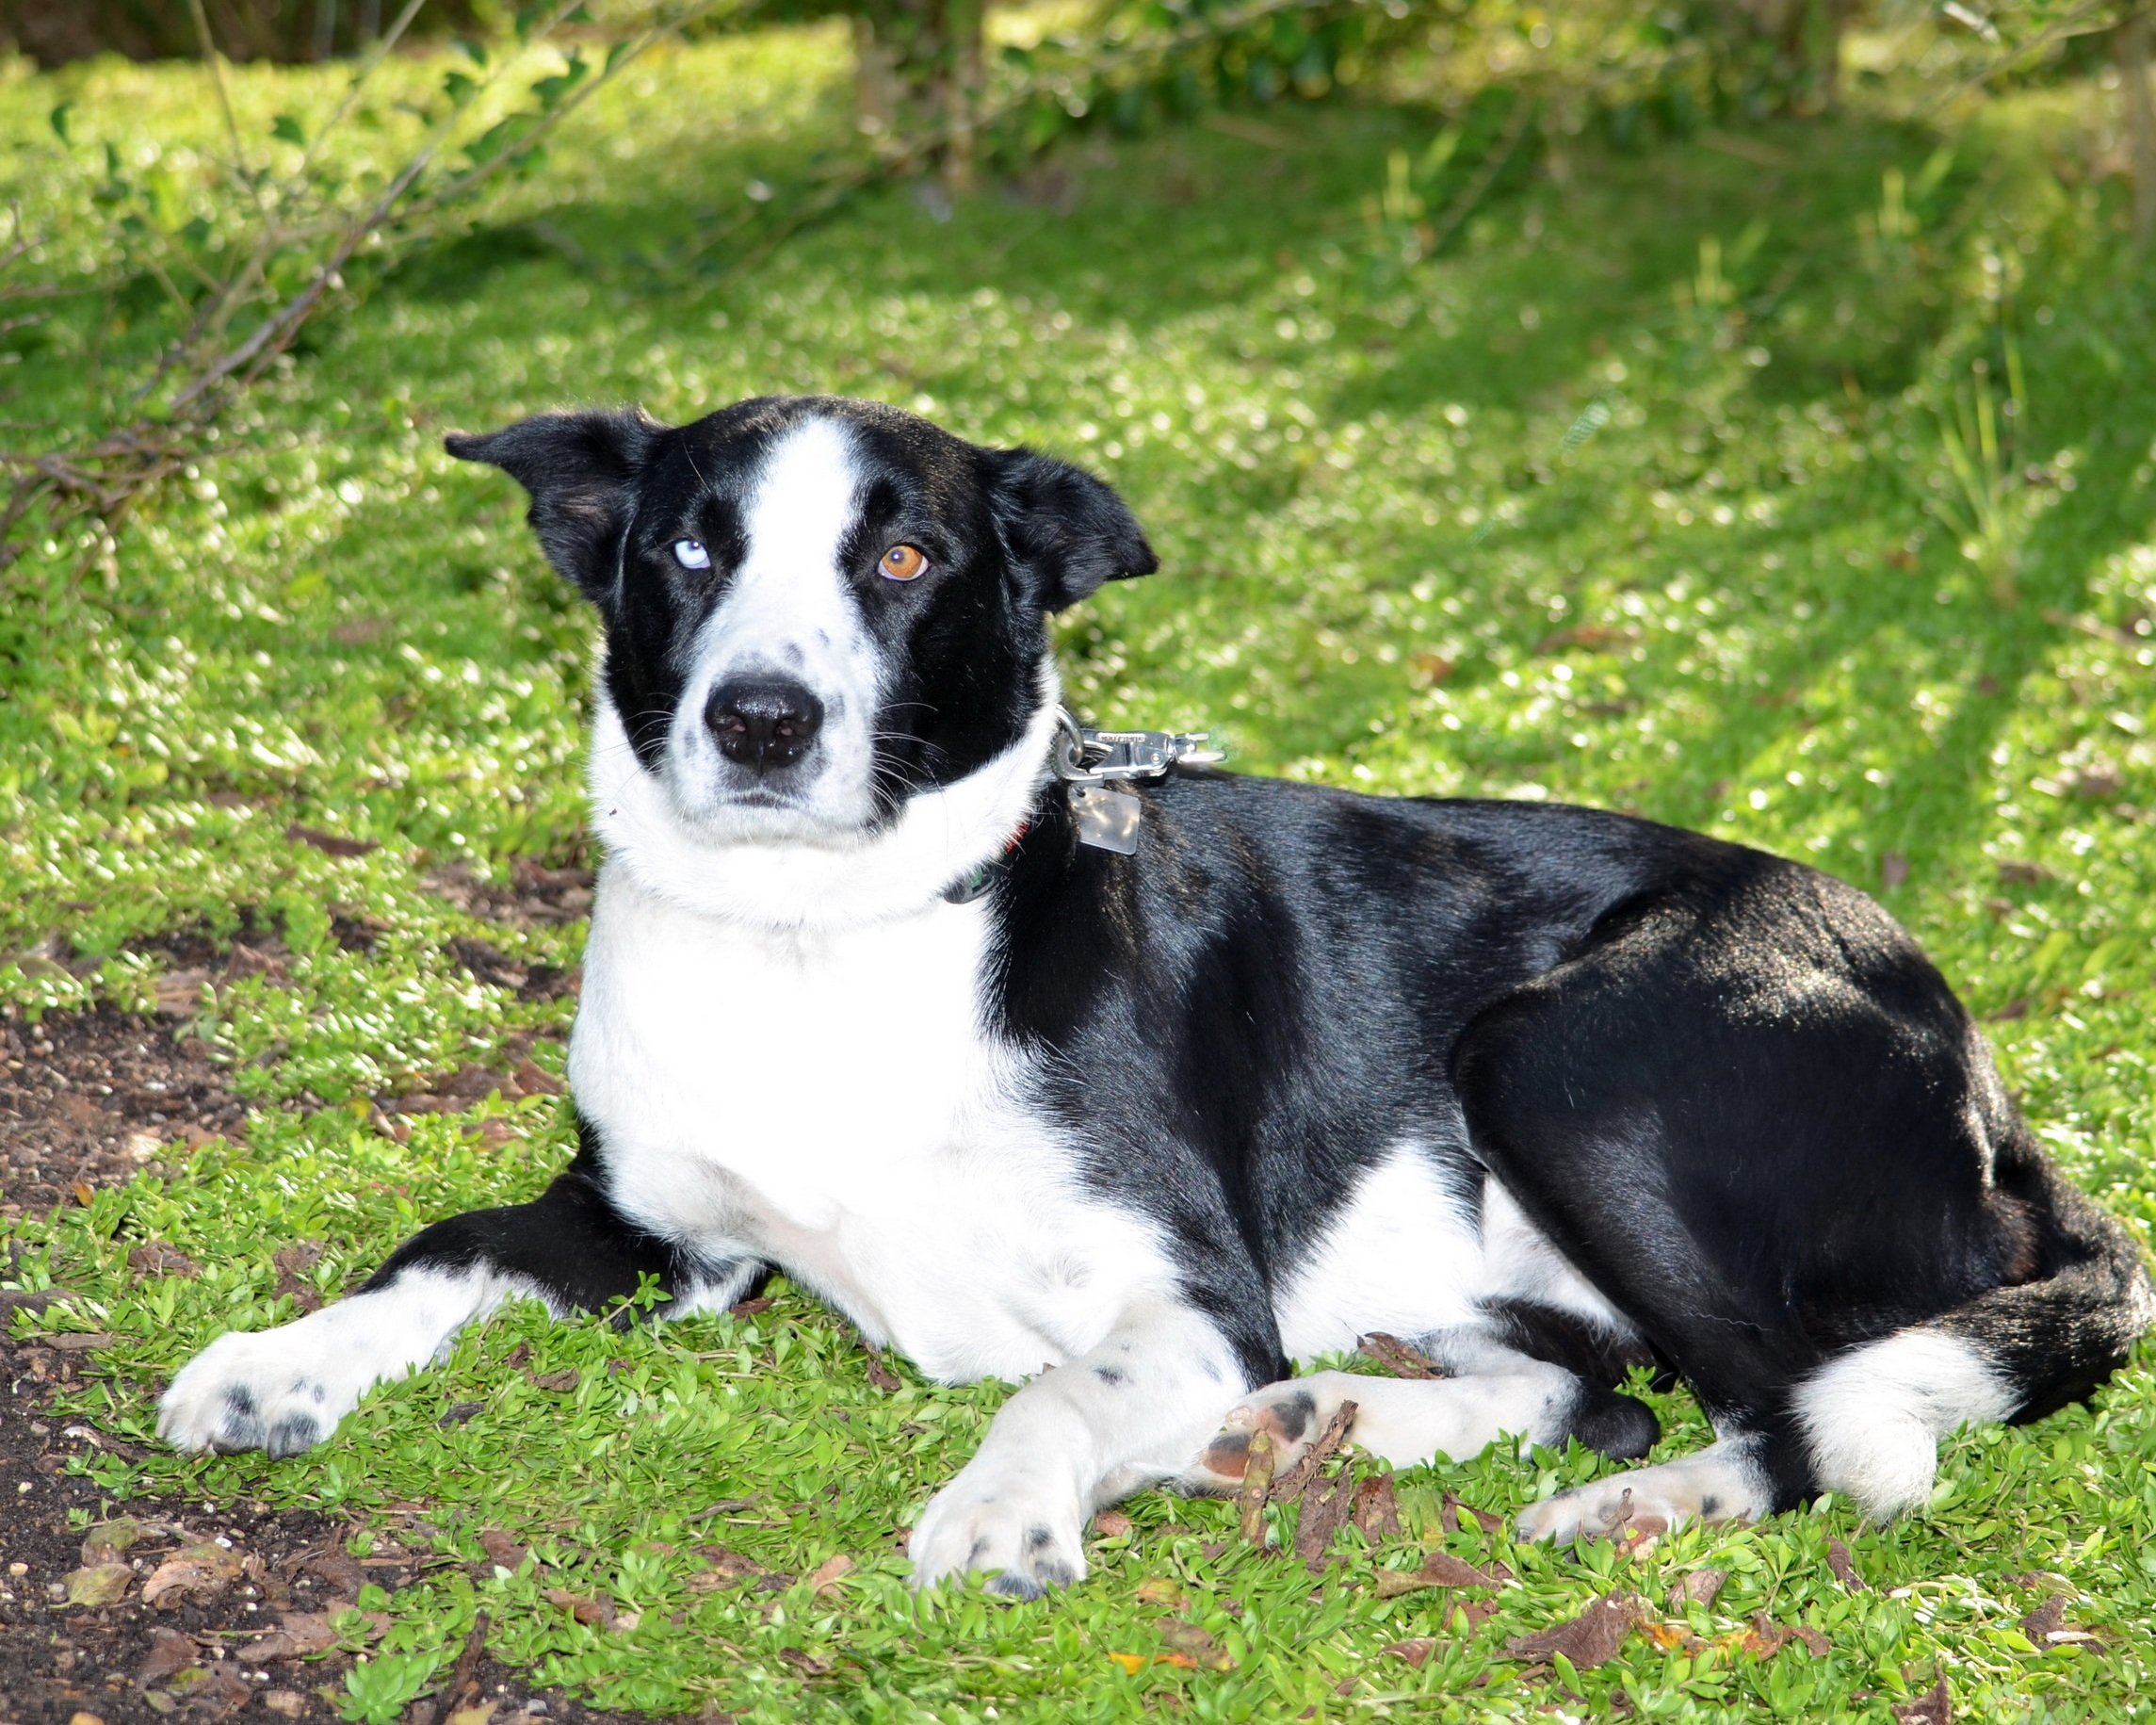 JACK - Jack is a spunky border collie who loves everyone. His owner is Sue Weston, owner of Weston Gardens. You will find Jack at our garden center waiting to get his belly rubbed. He howls at Sue to hurry up every morning, until she takes him to our plant nursery.